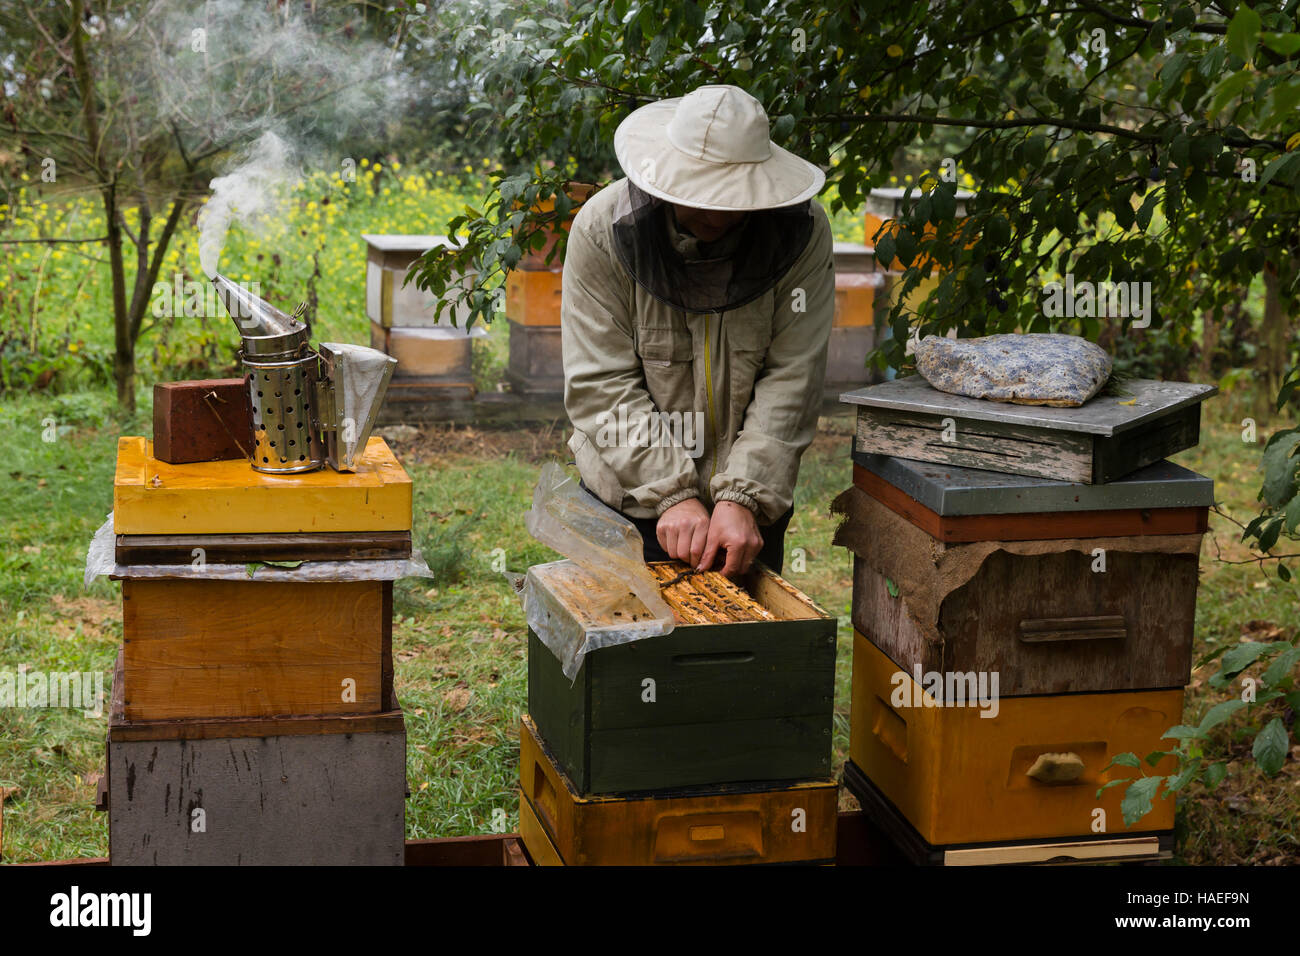 Bee-keeper during work with the beehives and bees in the apiary - Stock Image